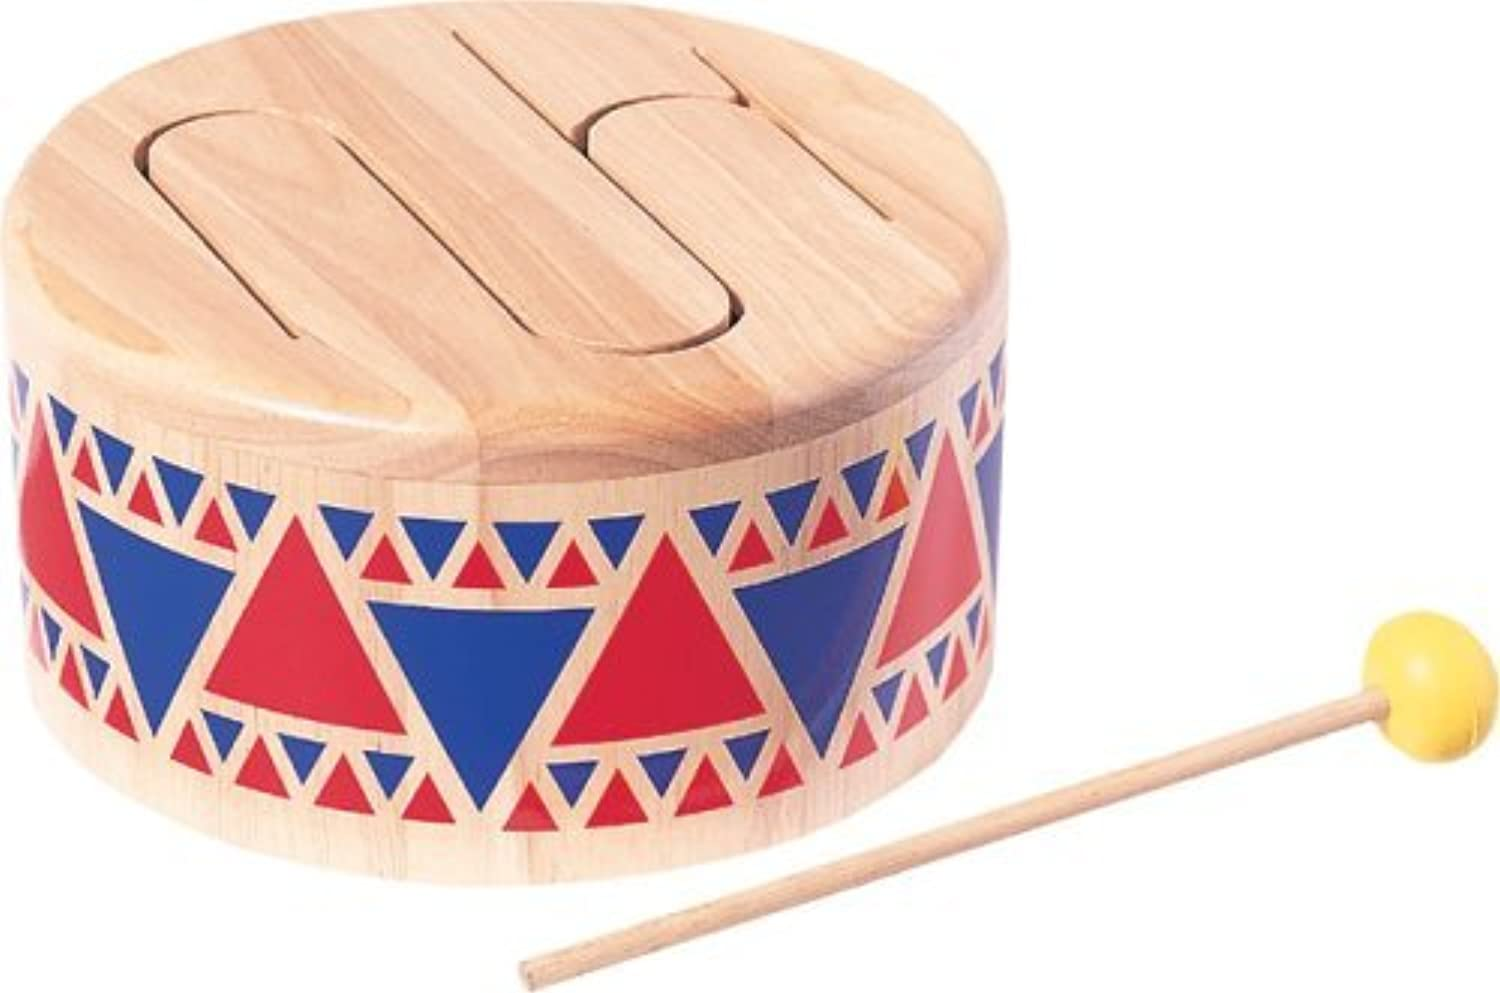 Plan Toys Solid Drum by Plan Toys